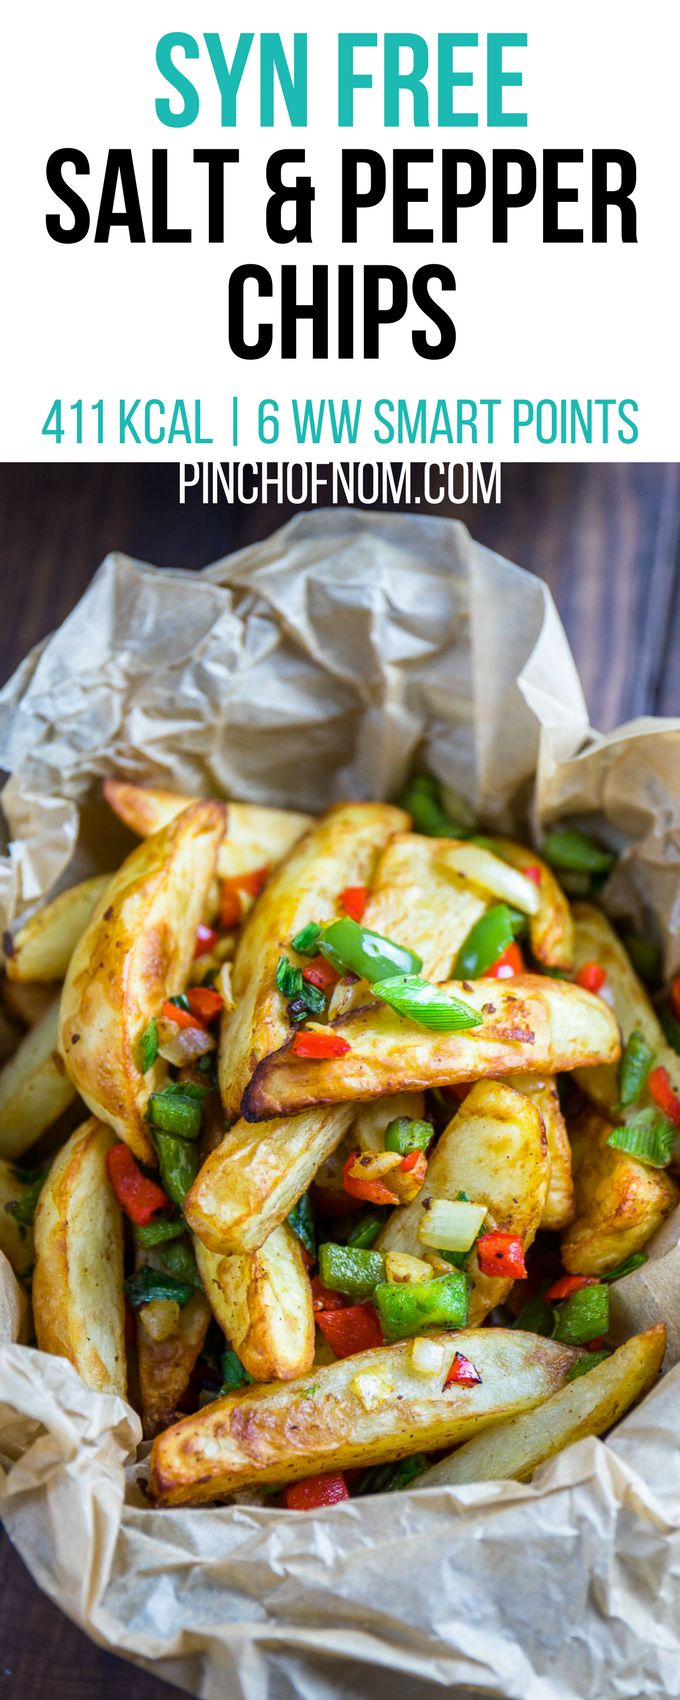 Syn Free Salt and Pepper Chips | Pinch Of Nom Slimming World Recipes 411 kcal | Syn Free | 6 Weight Watchers Smart Points